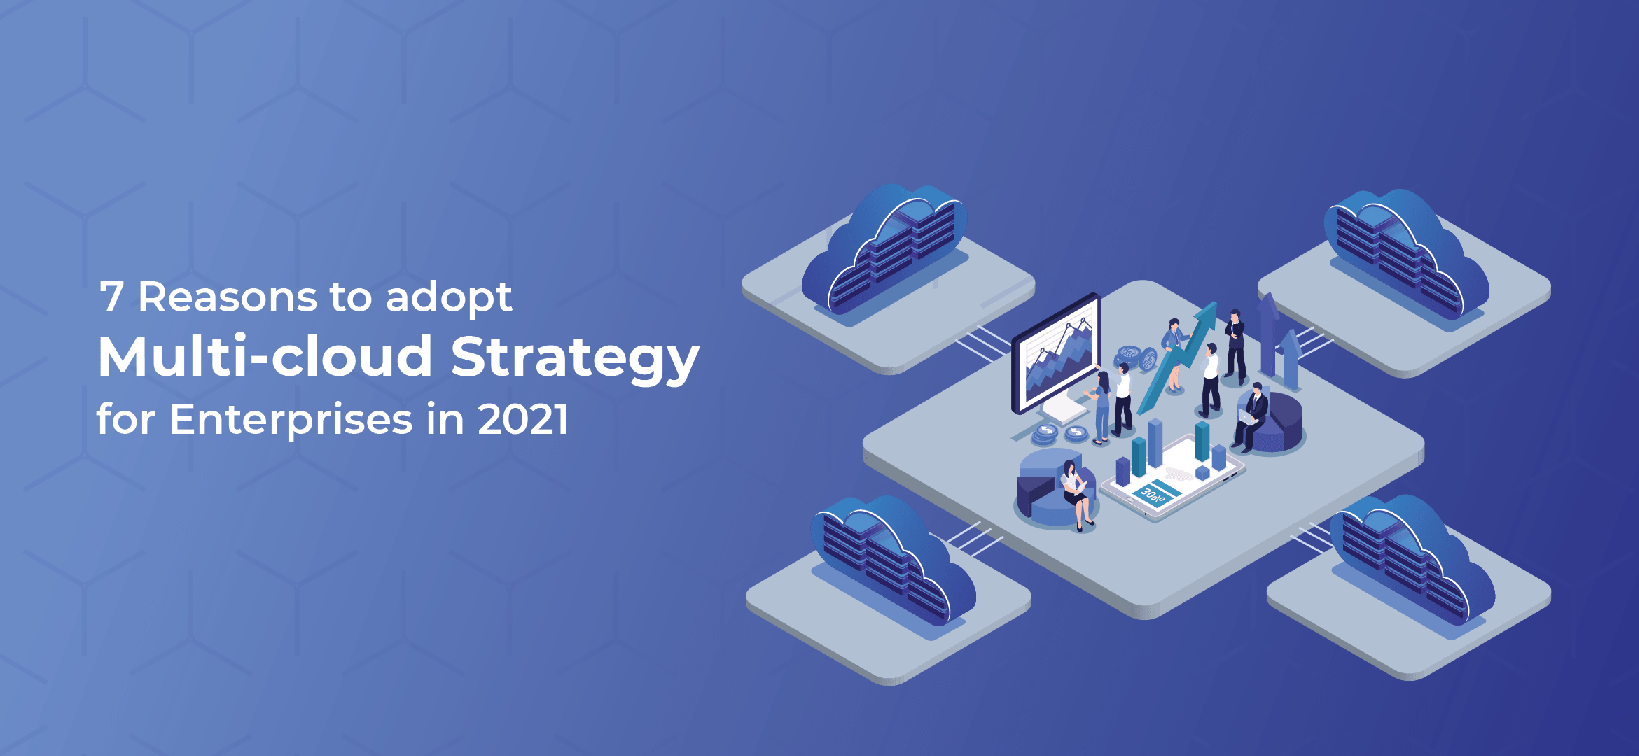 7 Reasons to Adopt Multi-Cloud Strategy for Enterprises in 2021